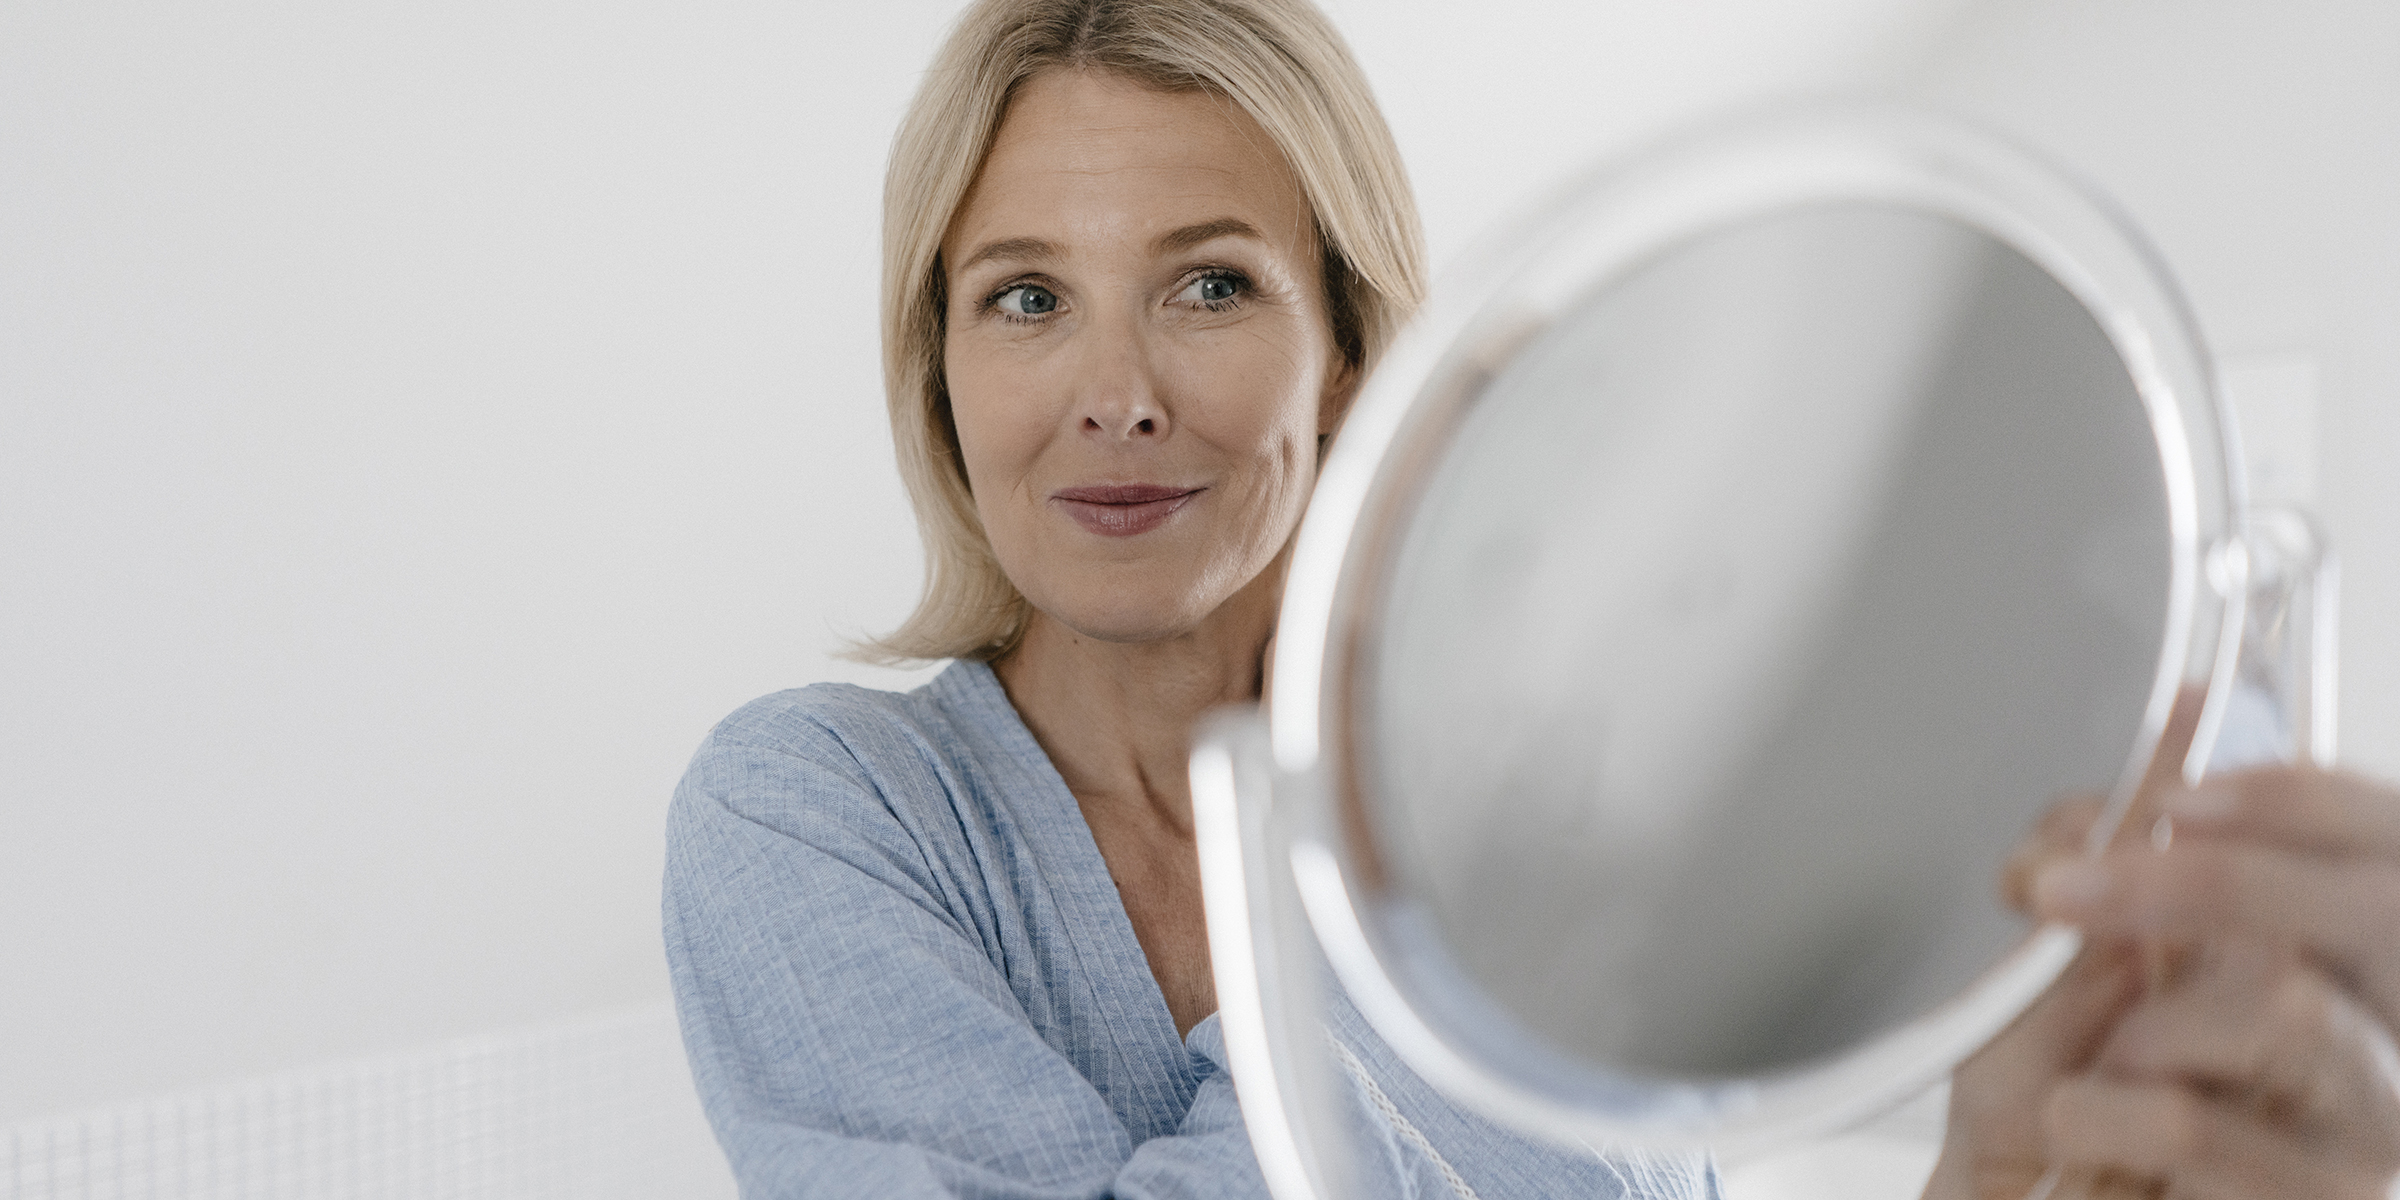 5 Dermatologist-Approved Anti-Aging Products Under $100 1